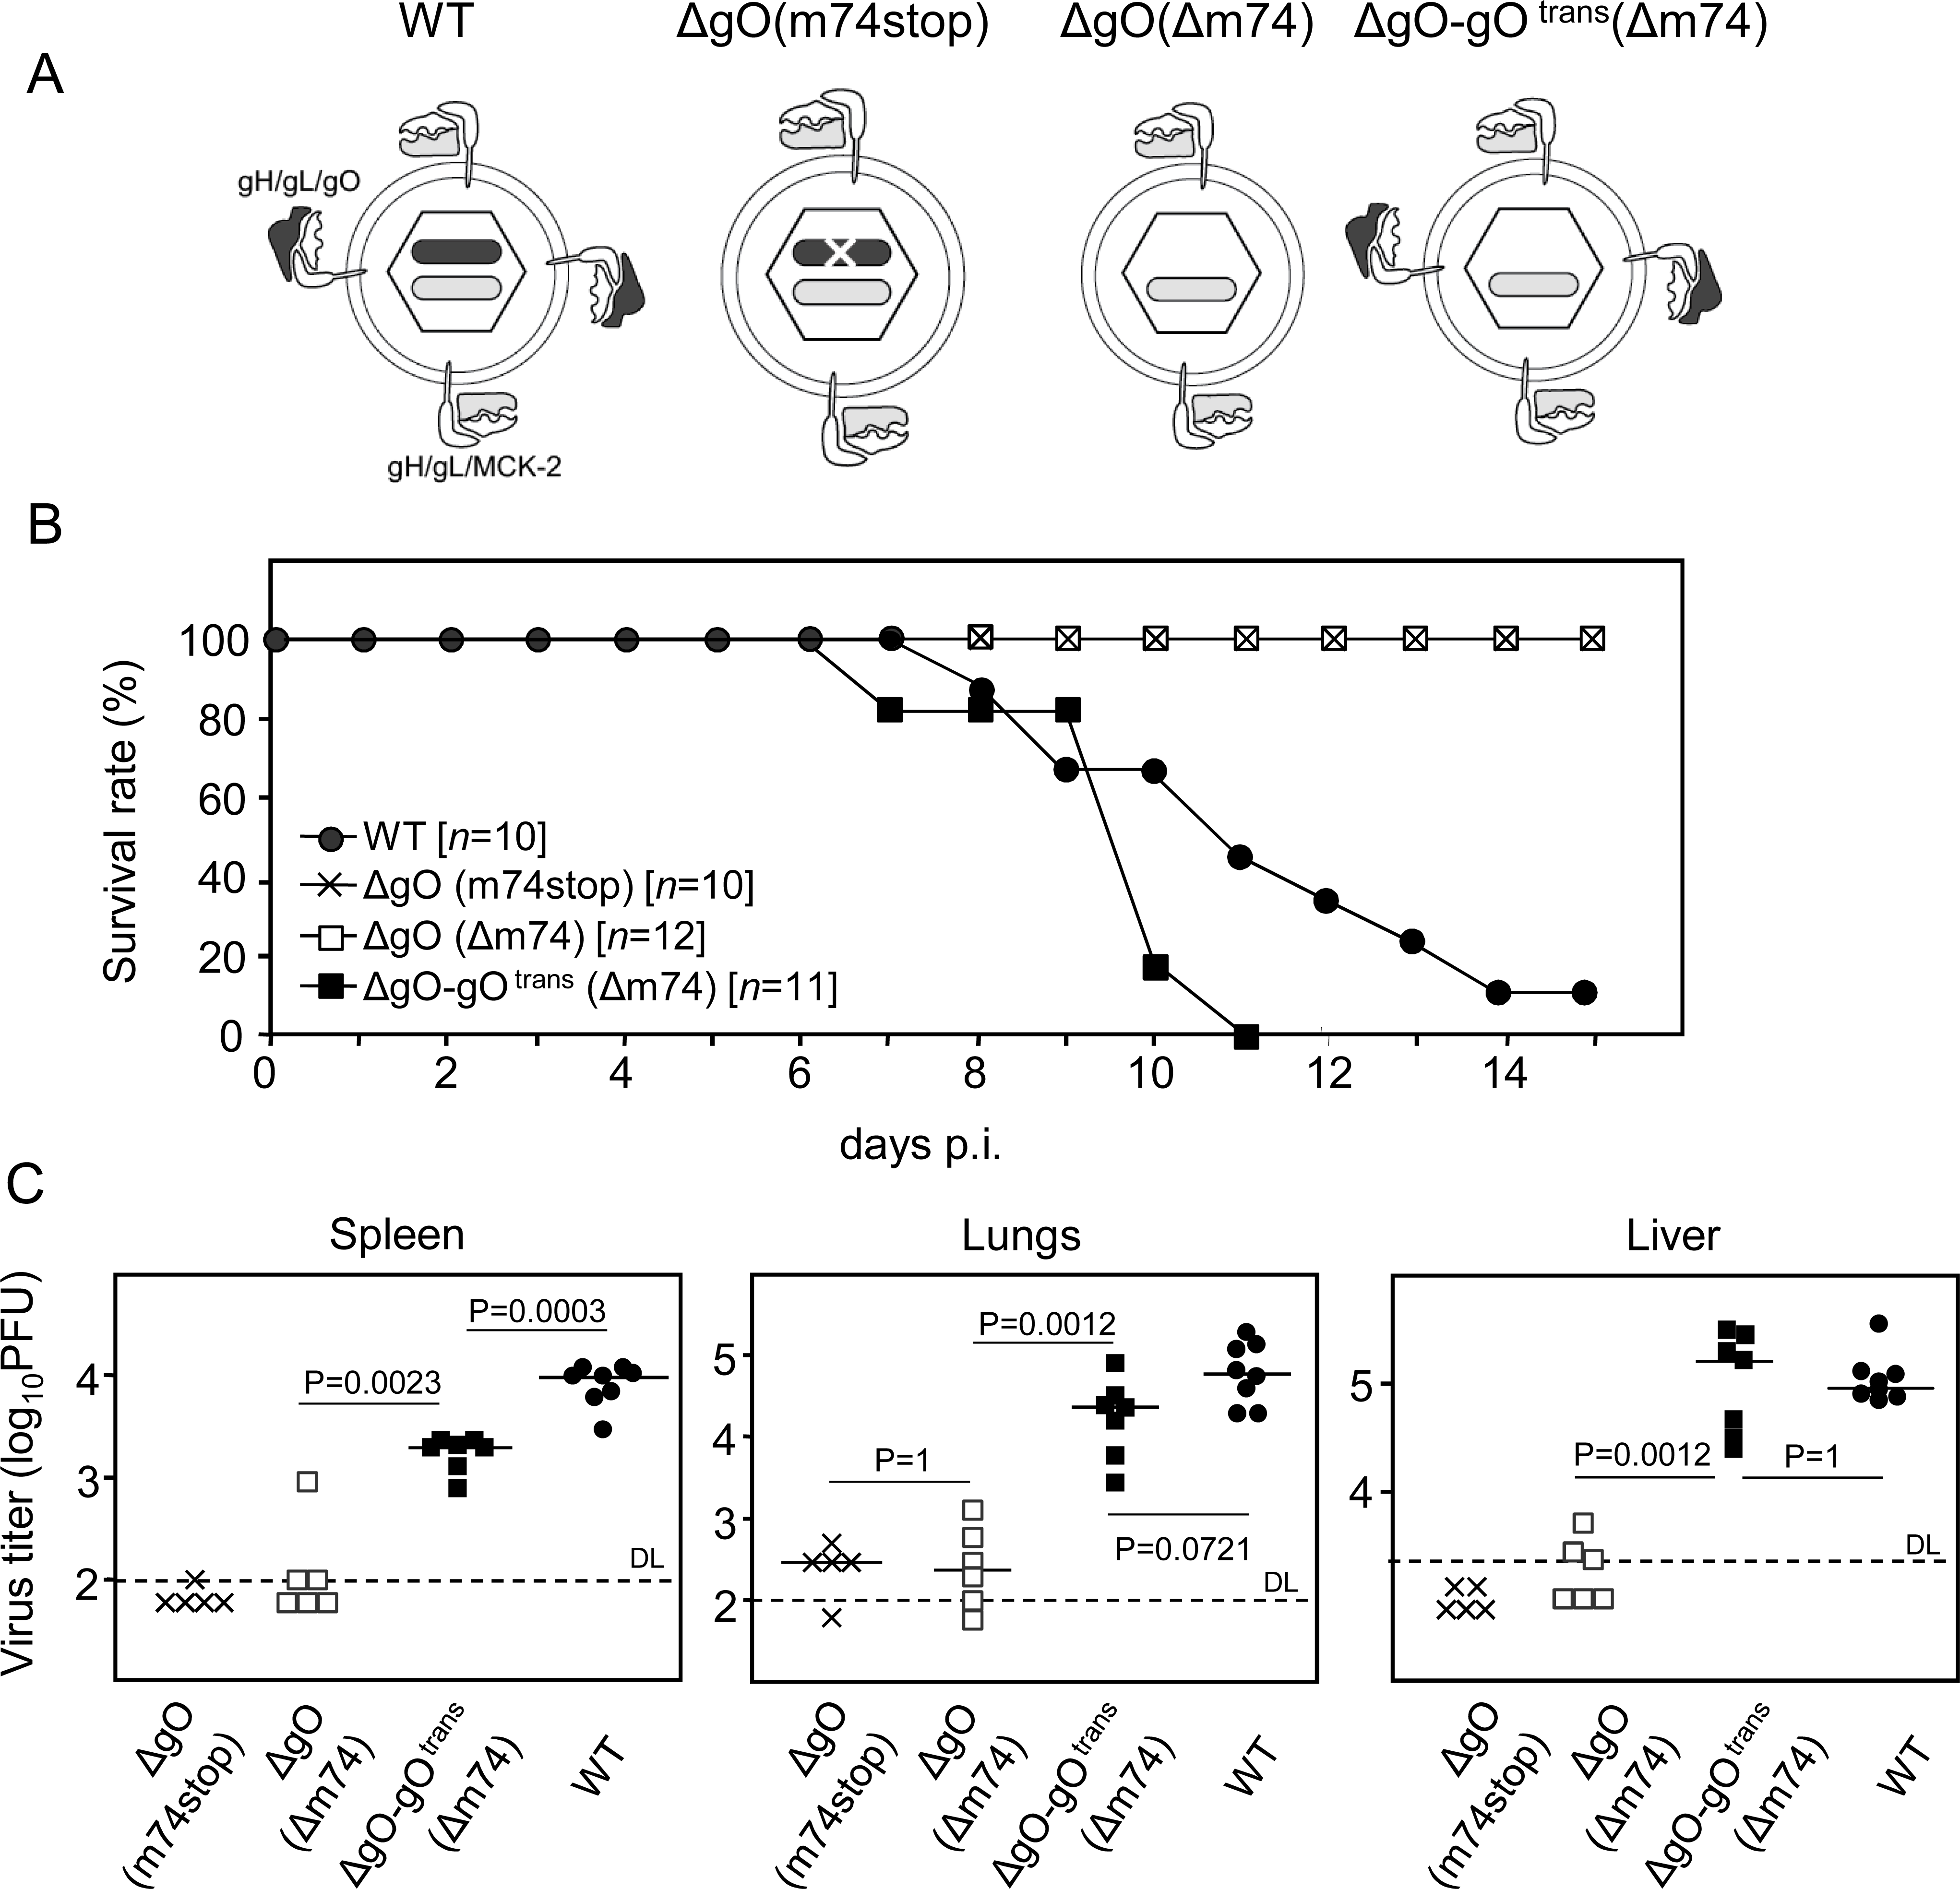 Knock-out of gO strongly impairs infection of otherwise highly-susceptible neonatal mice.